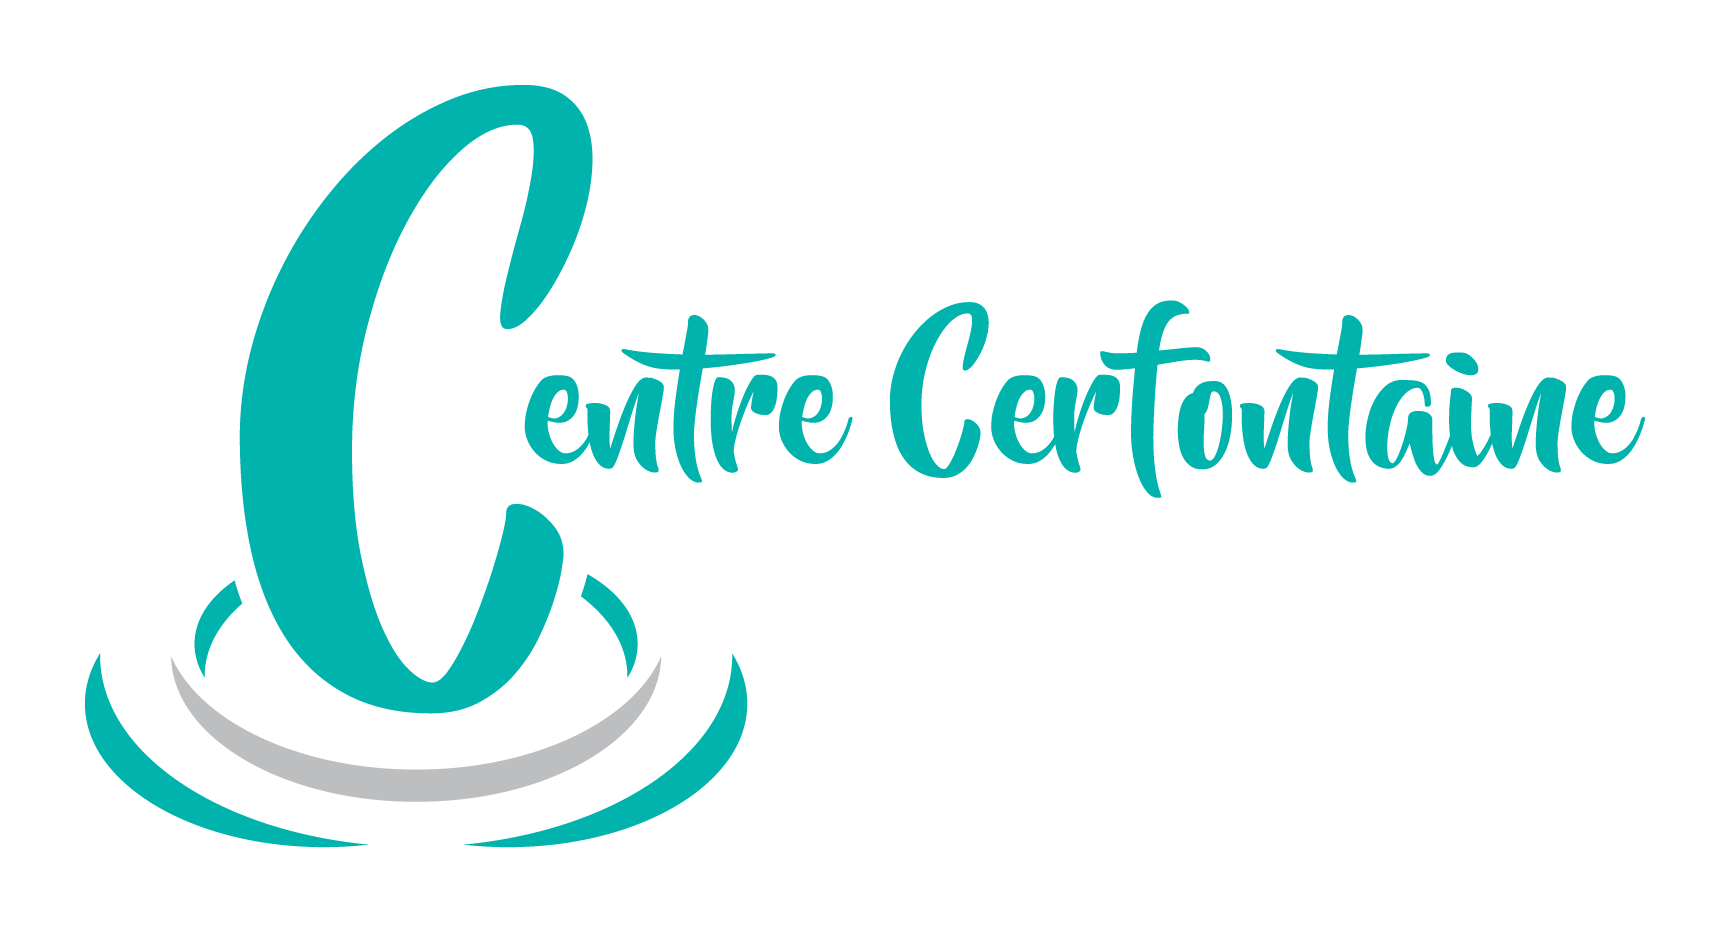 Centre Cerfontaine